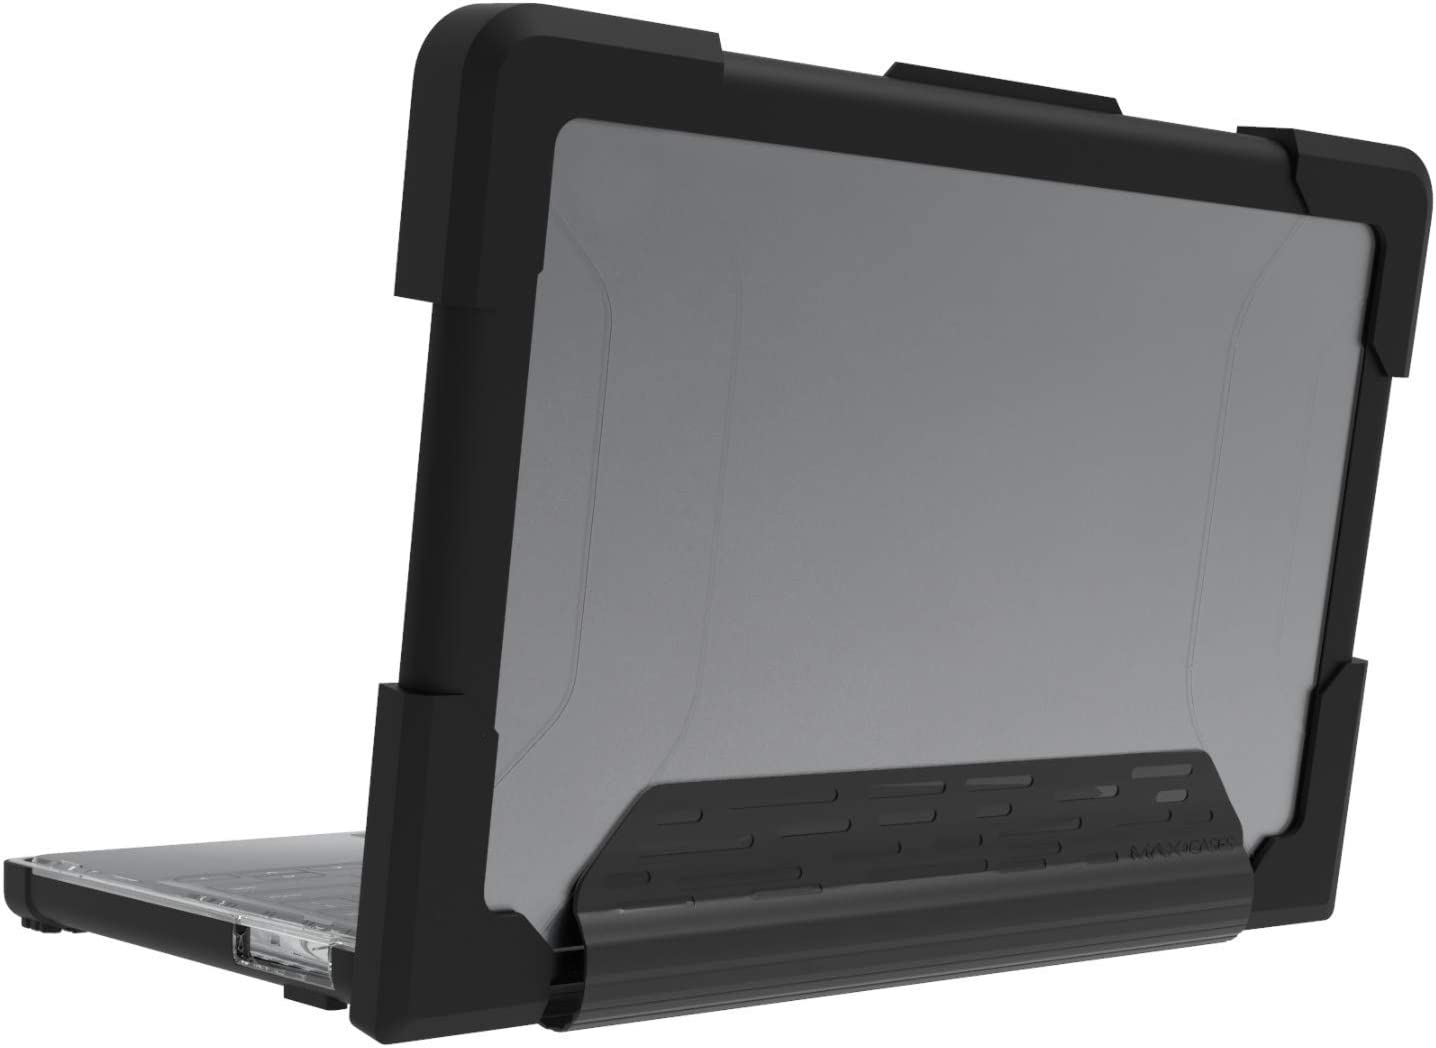 MAXCases Extreme Shell-S for HP G5 EE Chromebook Clamshell 14